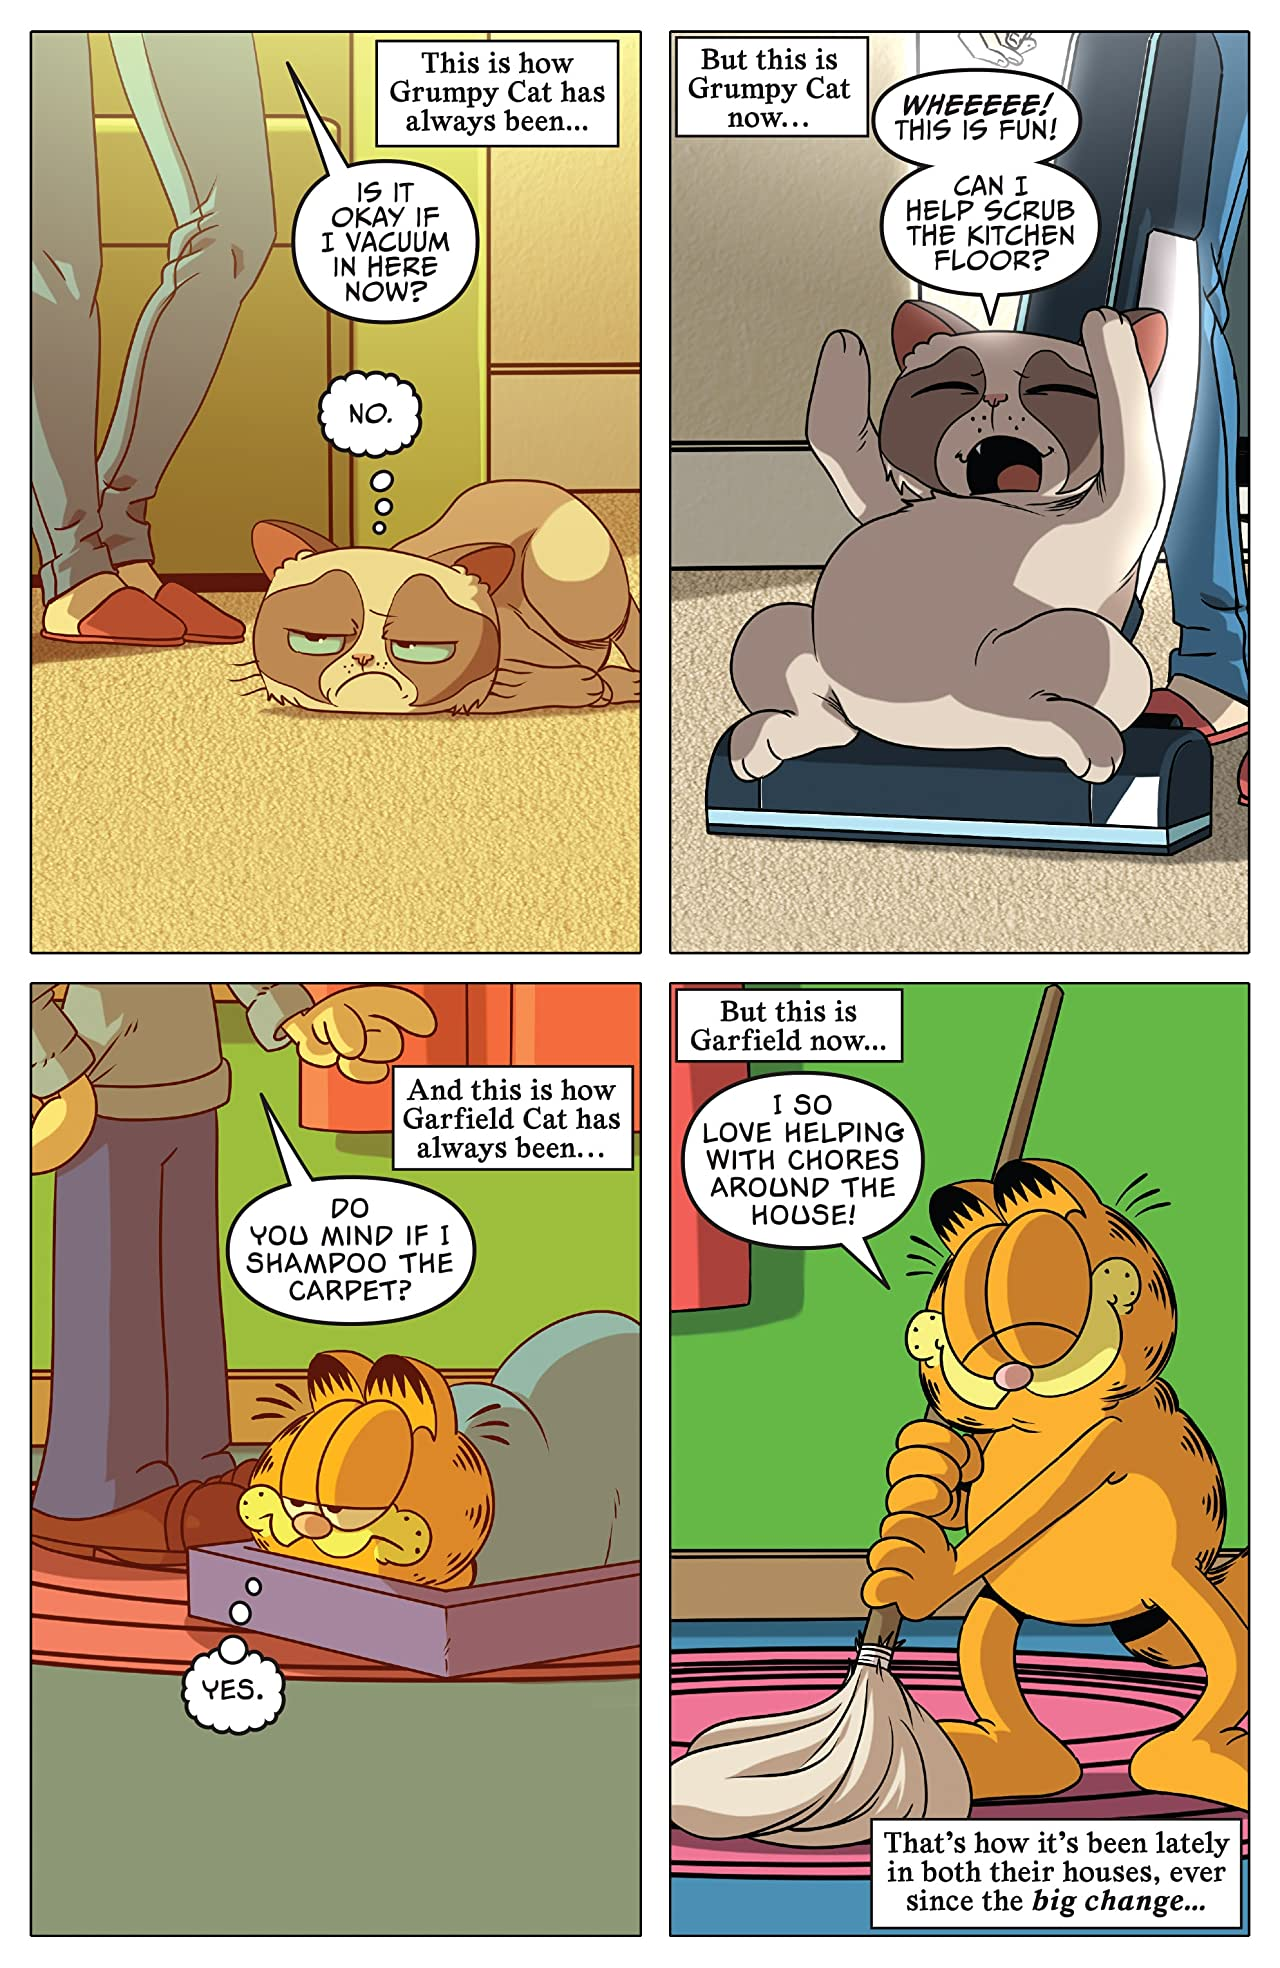 Grumpy Cat/Garfield #3